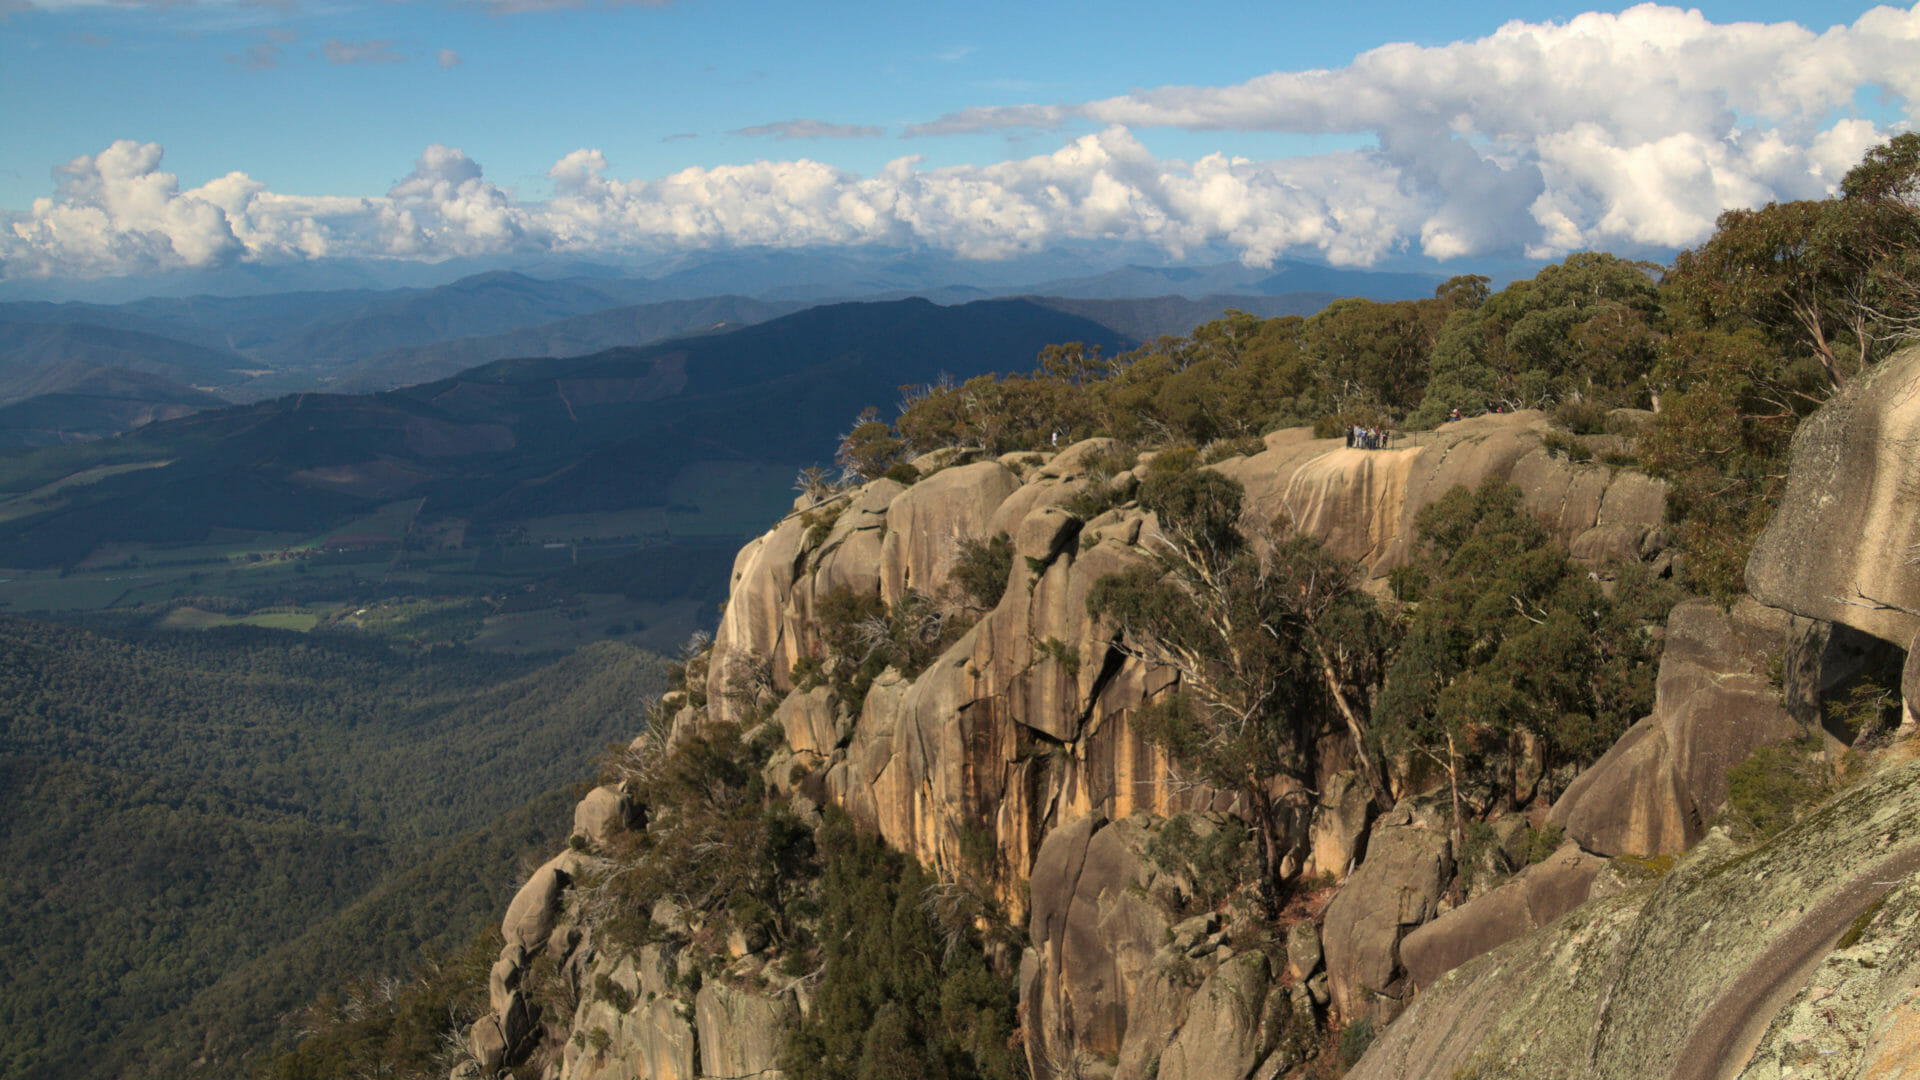 A shot from the top of Mount Buffalo over the valley in Victoria Australia